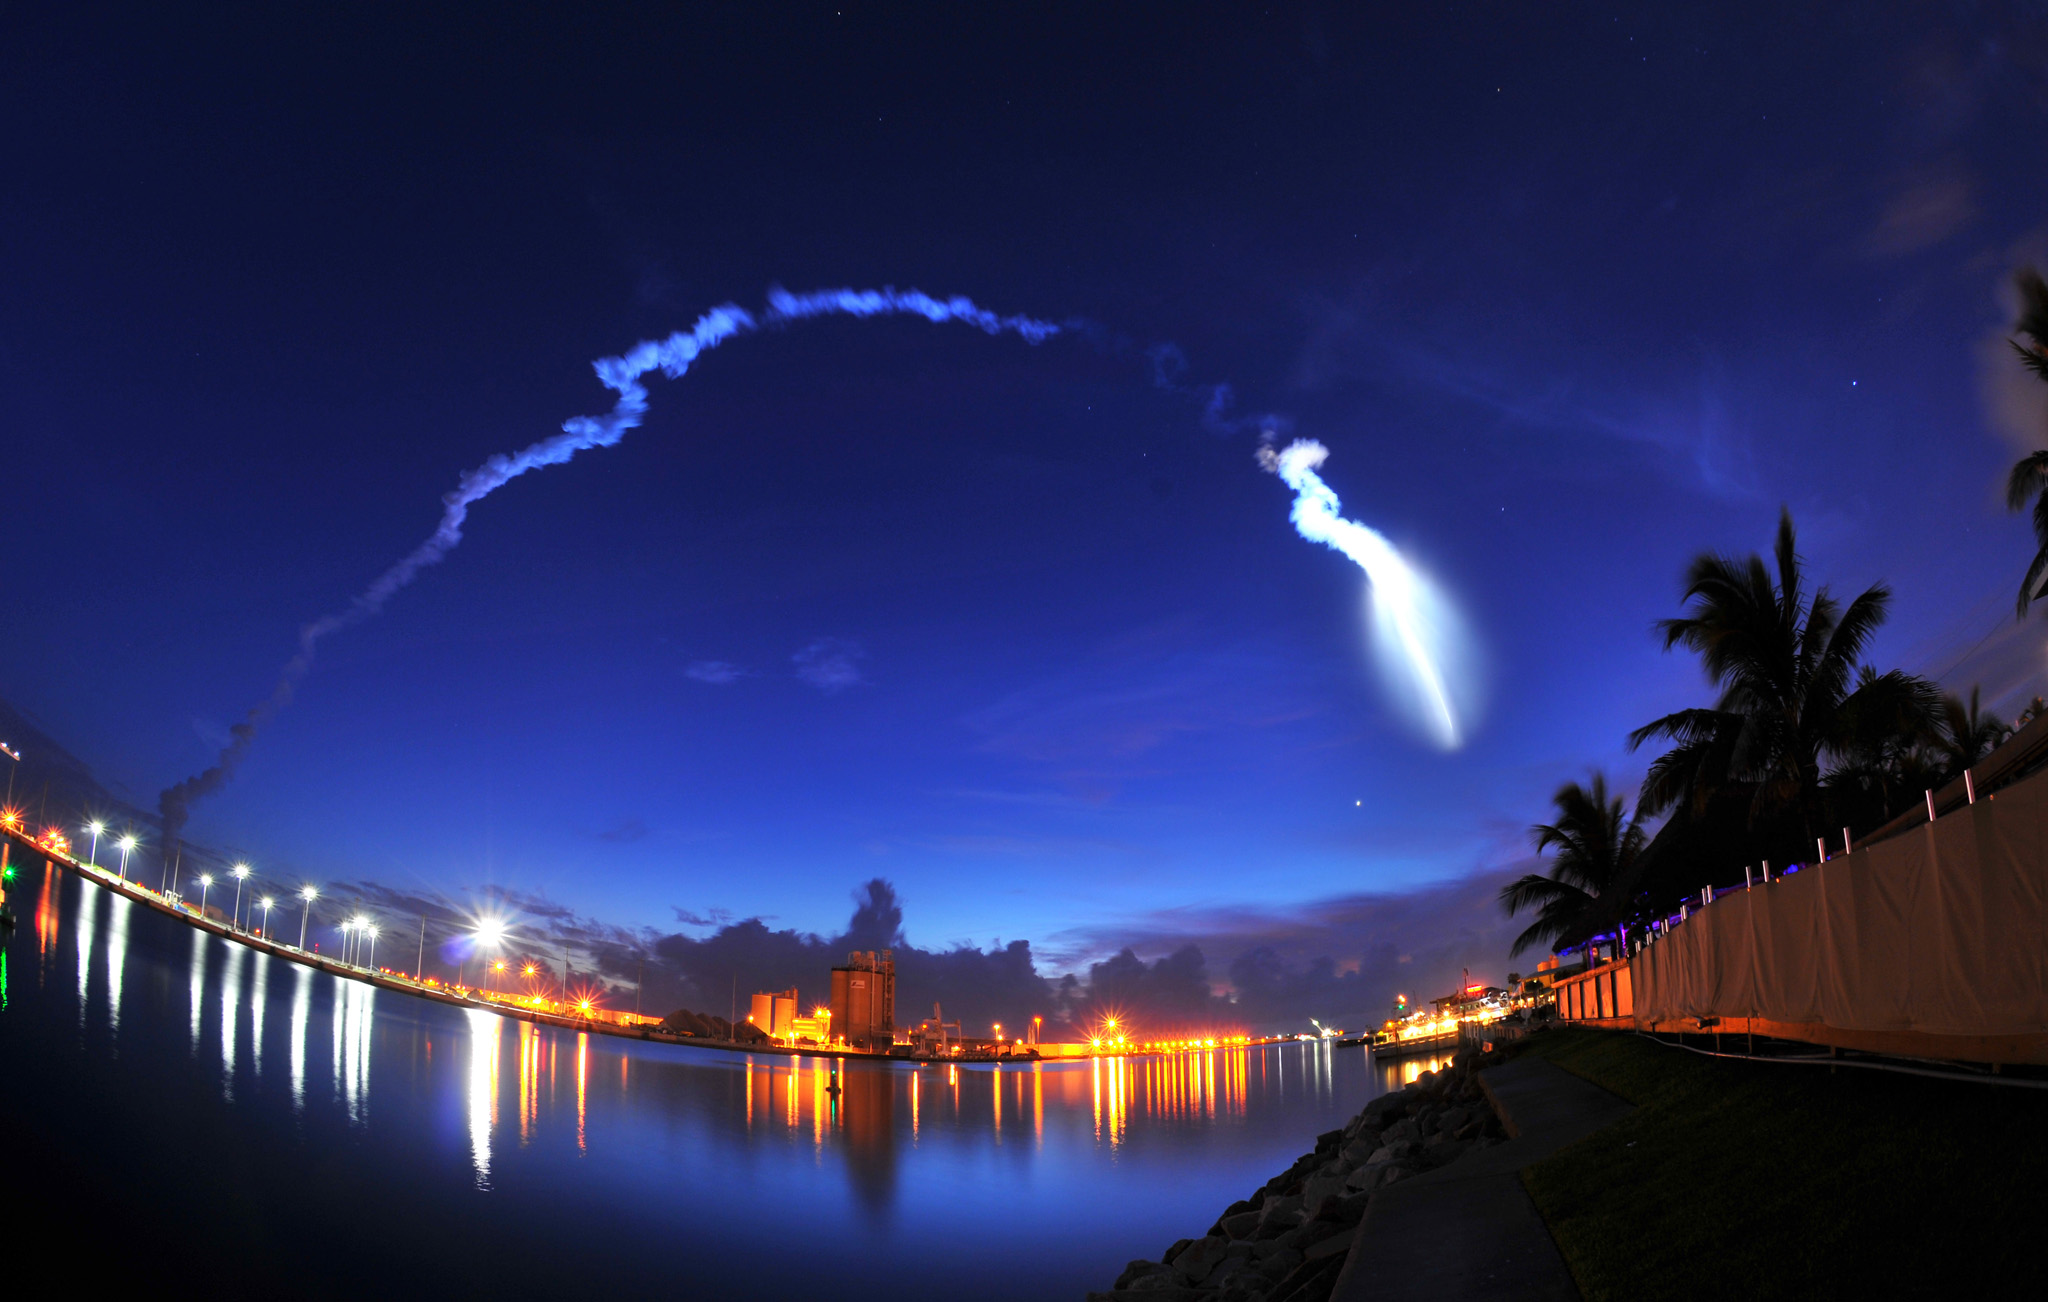 Atlas V Launch...The United Launch Alliance Atlas V rocket takes off from Cape Canaveral Air Force Station Launch Complex 41, viewed from the seawall at Milliken's Reef at Port Canaveral, Fla., early Wednesday, Sept. 2, 2015. The rocket is carrying a U.S. Navy communications satellite. (Malcolm Denemark/Florida Today via AP) NO SALES; MANDATORY CREDIT; MAGS OUT